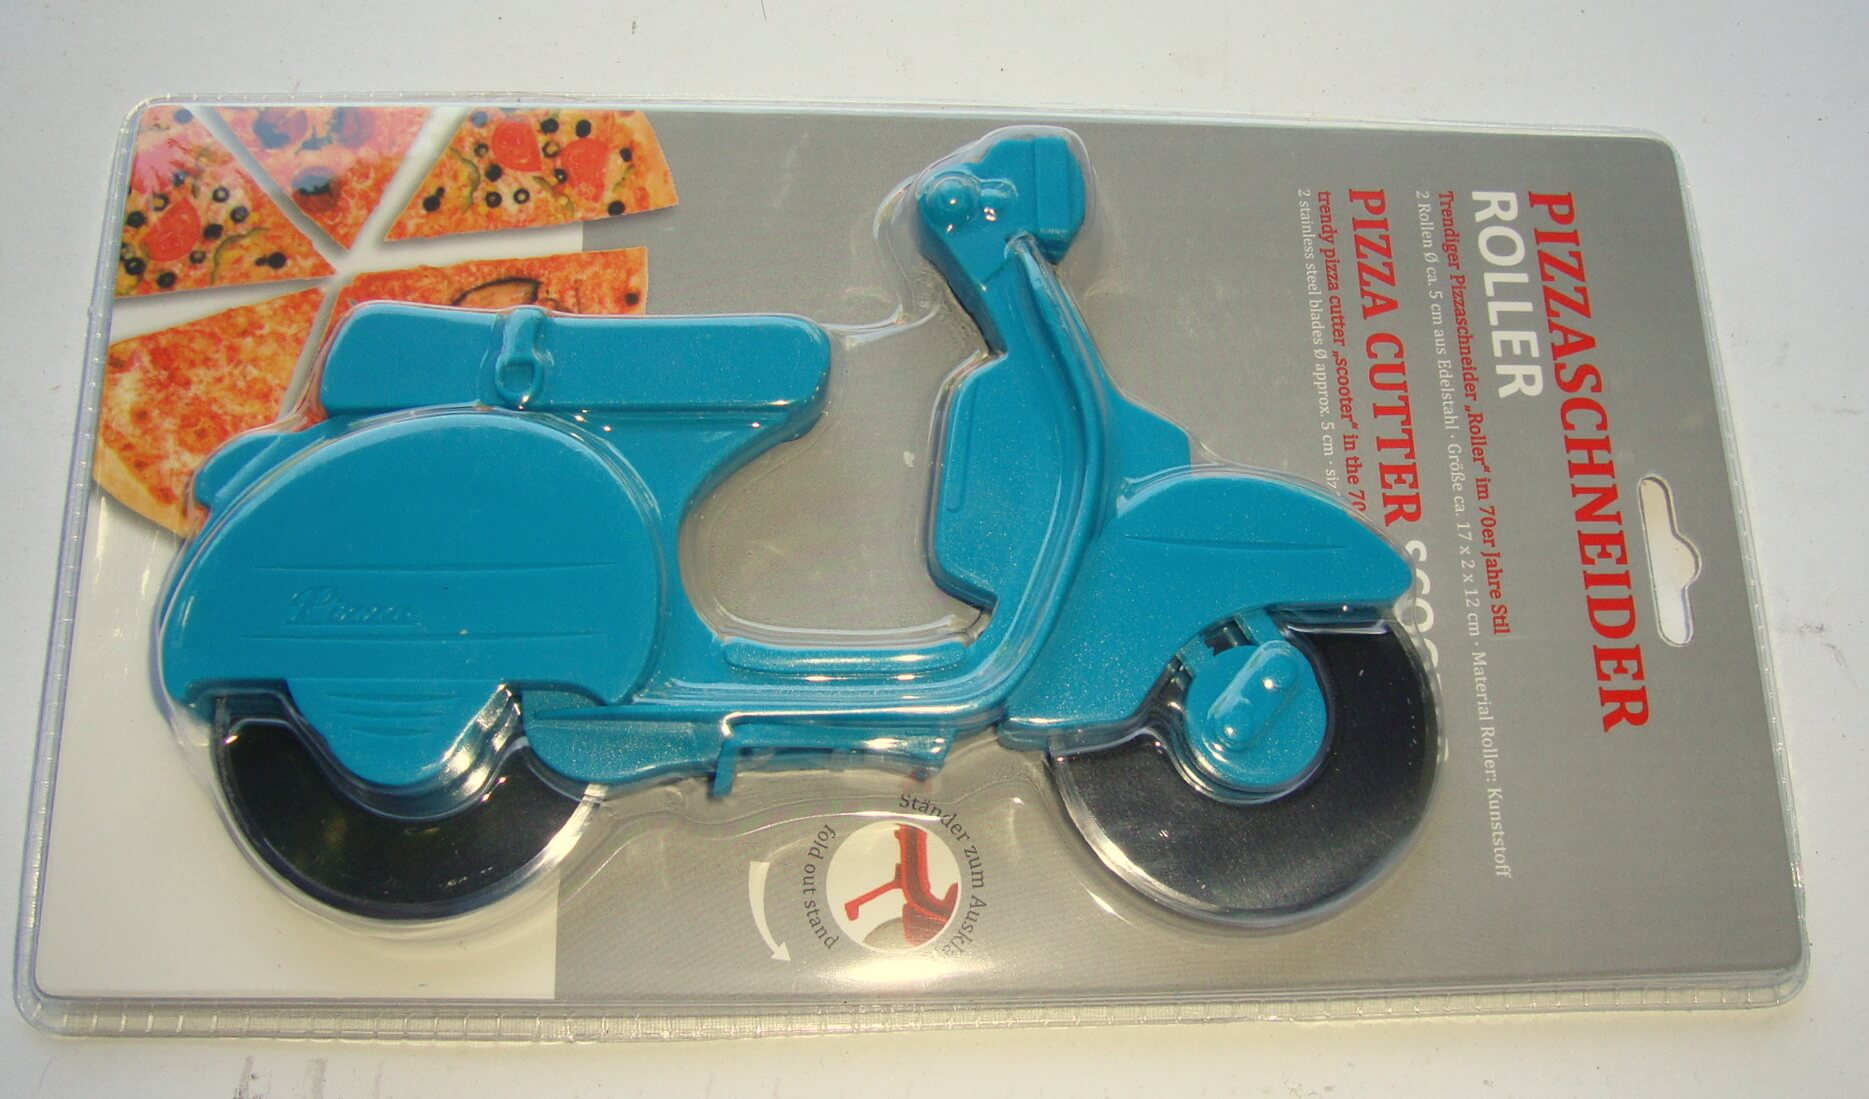 Pizza cutter scooter, turquoise